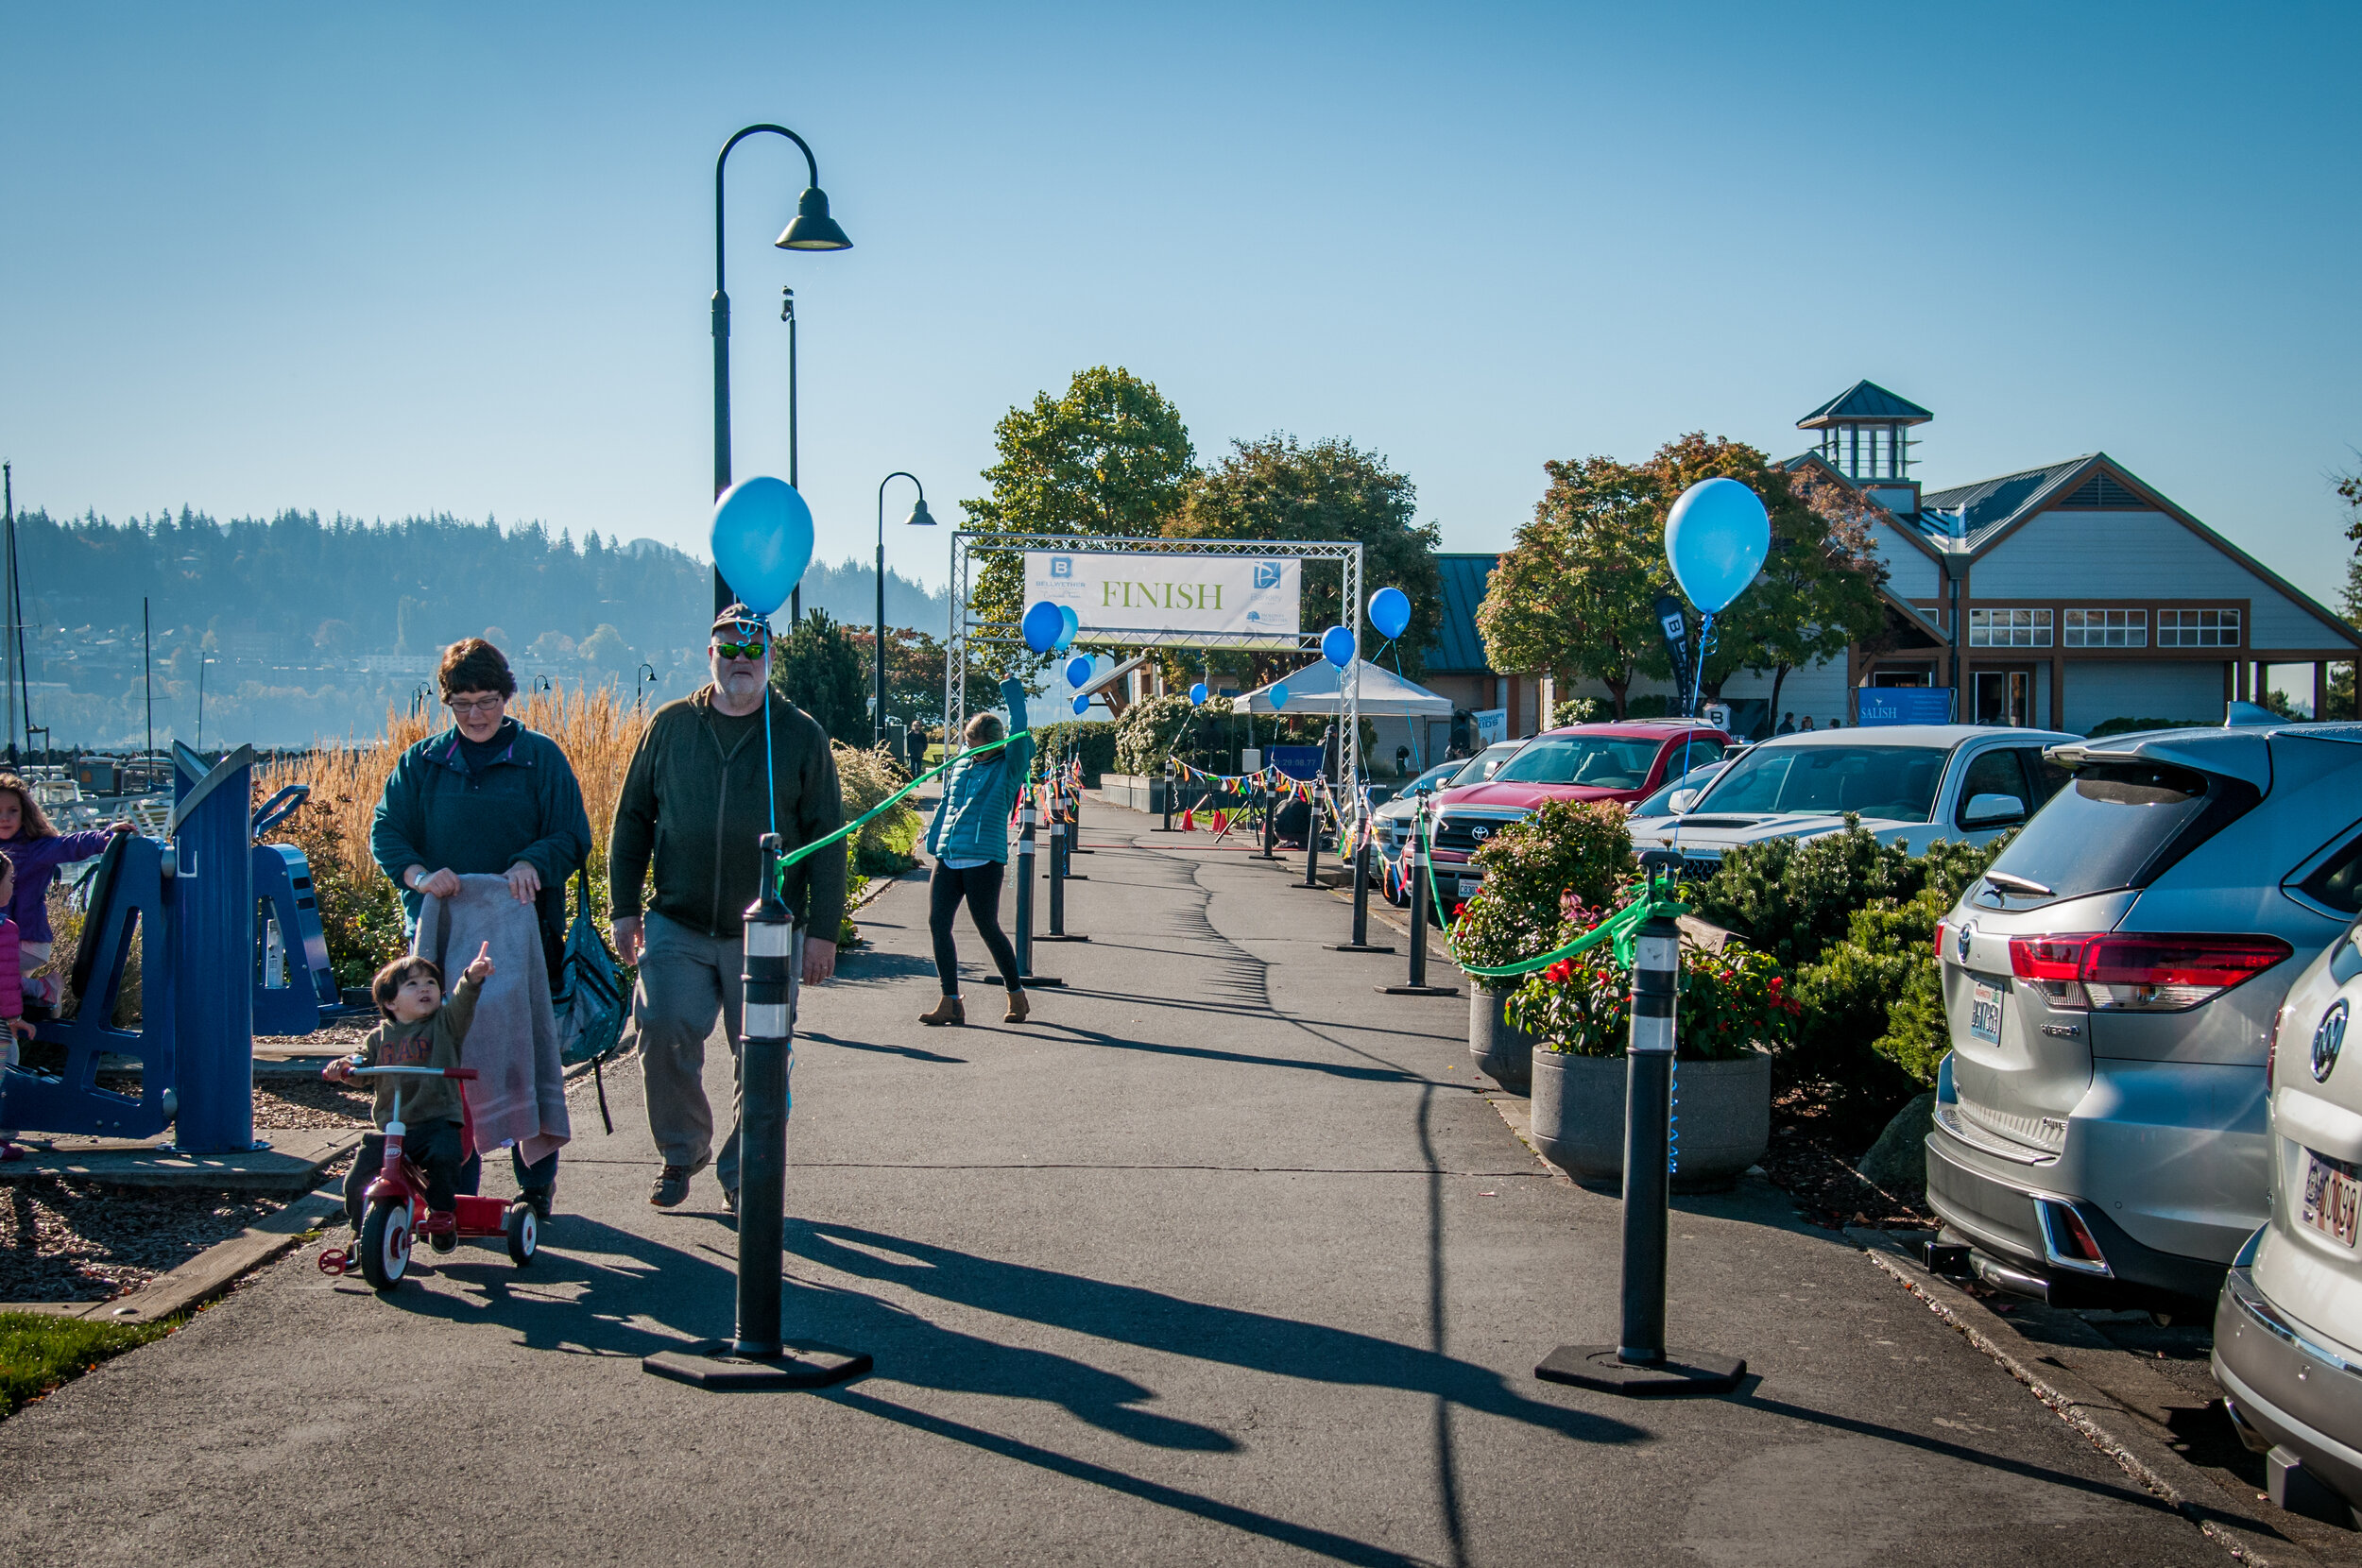 Finish line at Salish to Salish 10K race on Saturday, Oct. 13, 2018 in Bellingham, WA. The inaugural year saw 327 racers (Photo by Salish Wealth Management).